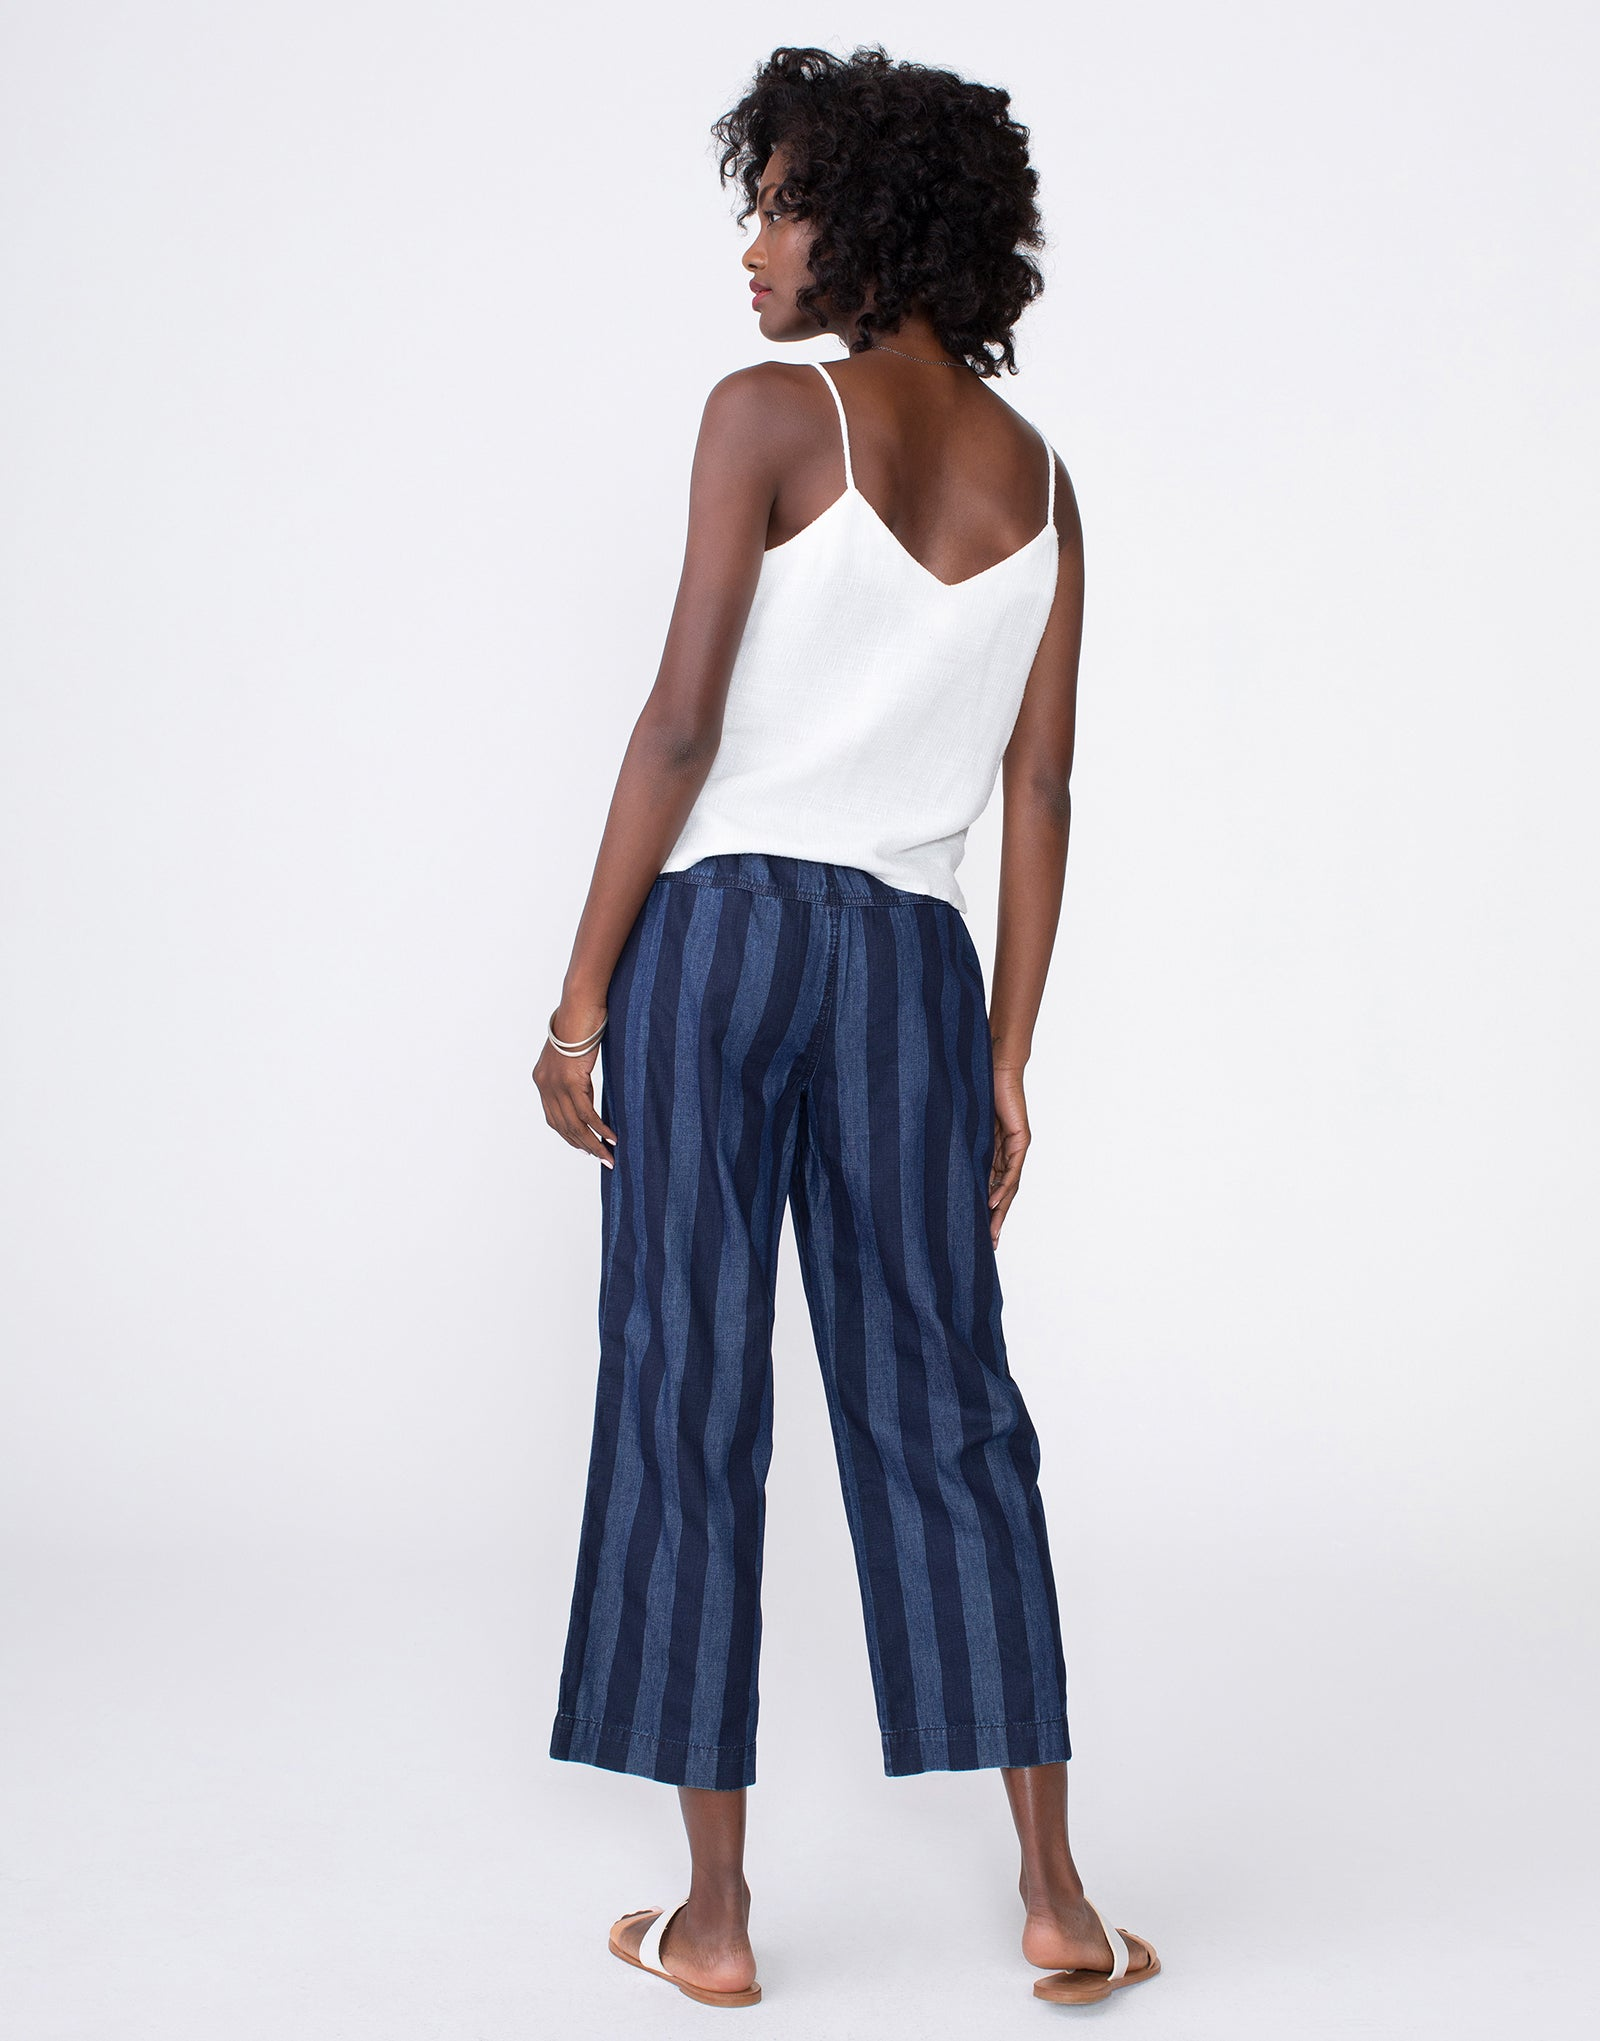 MATILDA Relaxed Beach Pant in Navy Broad Stripe